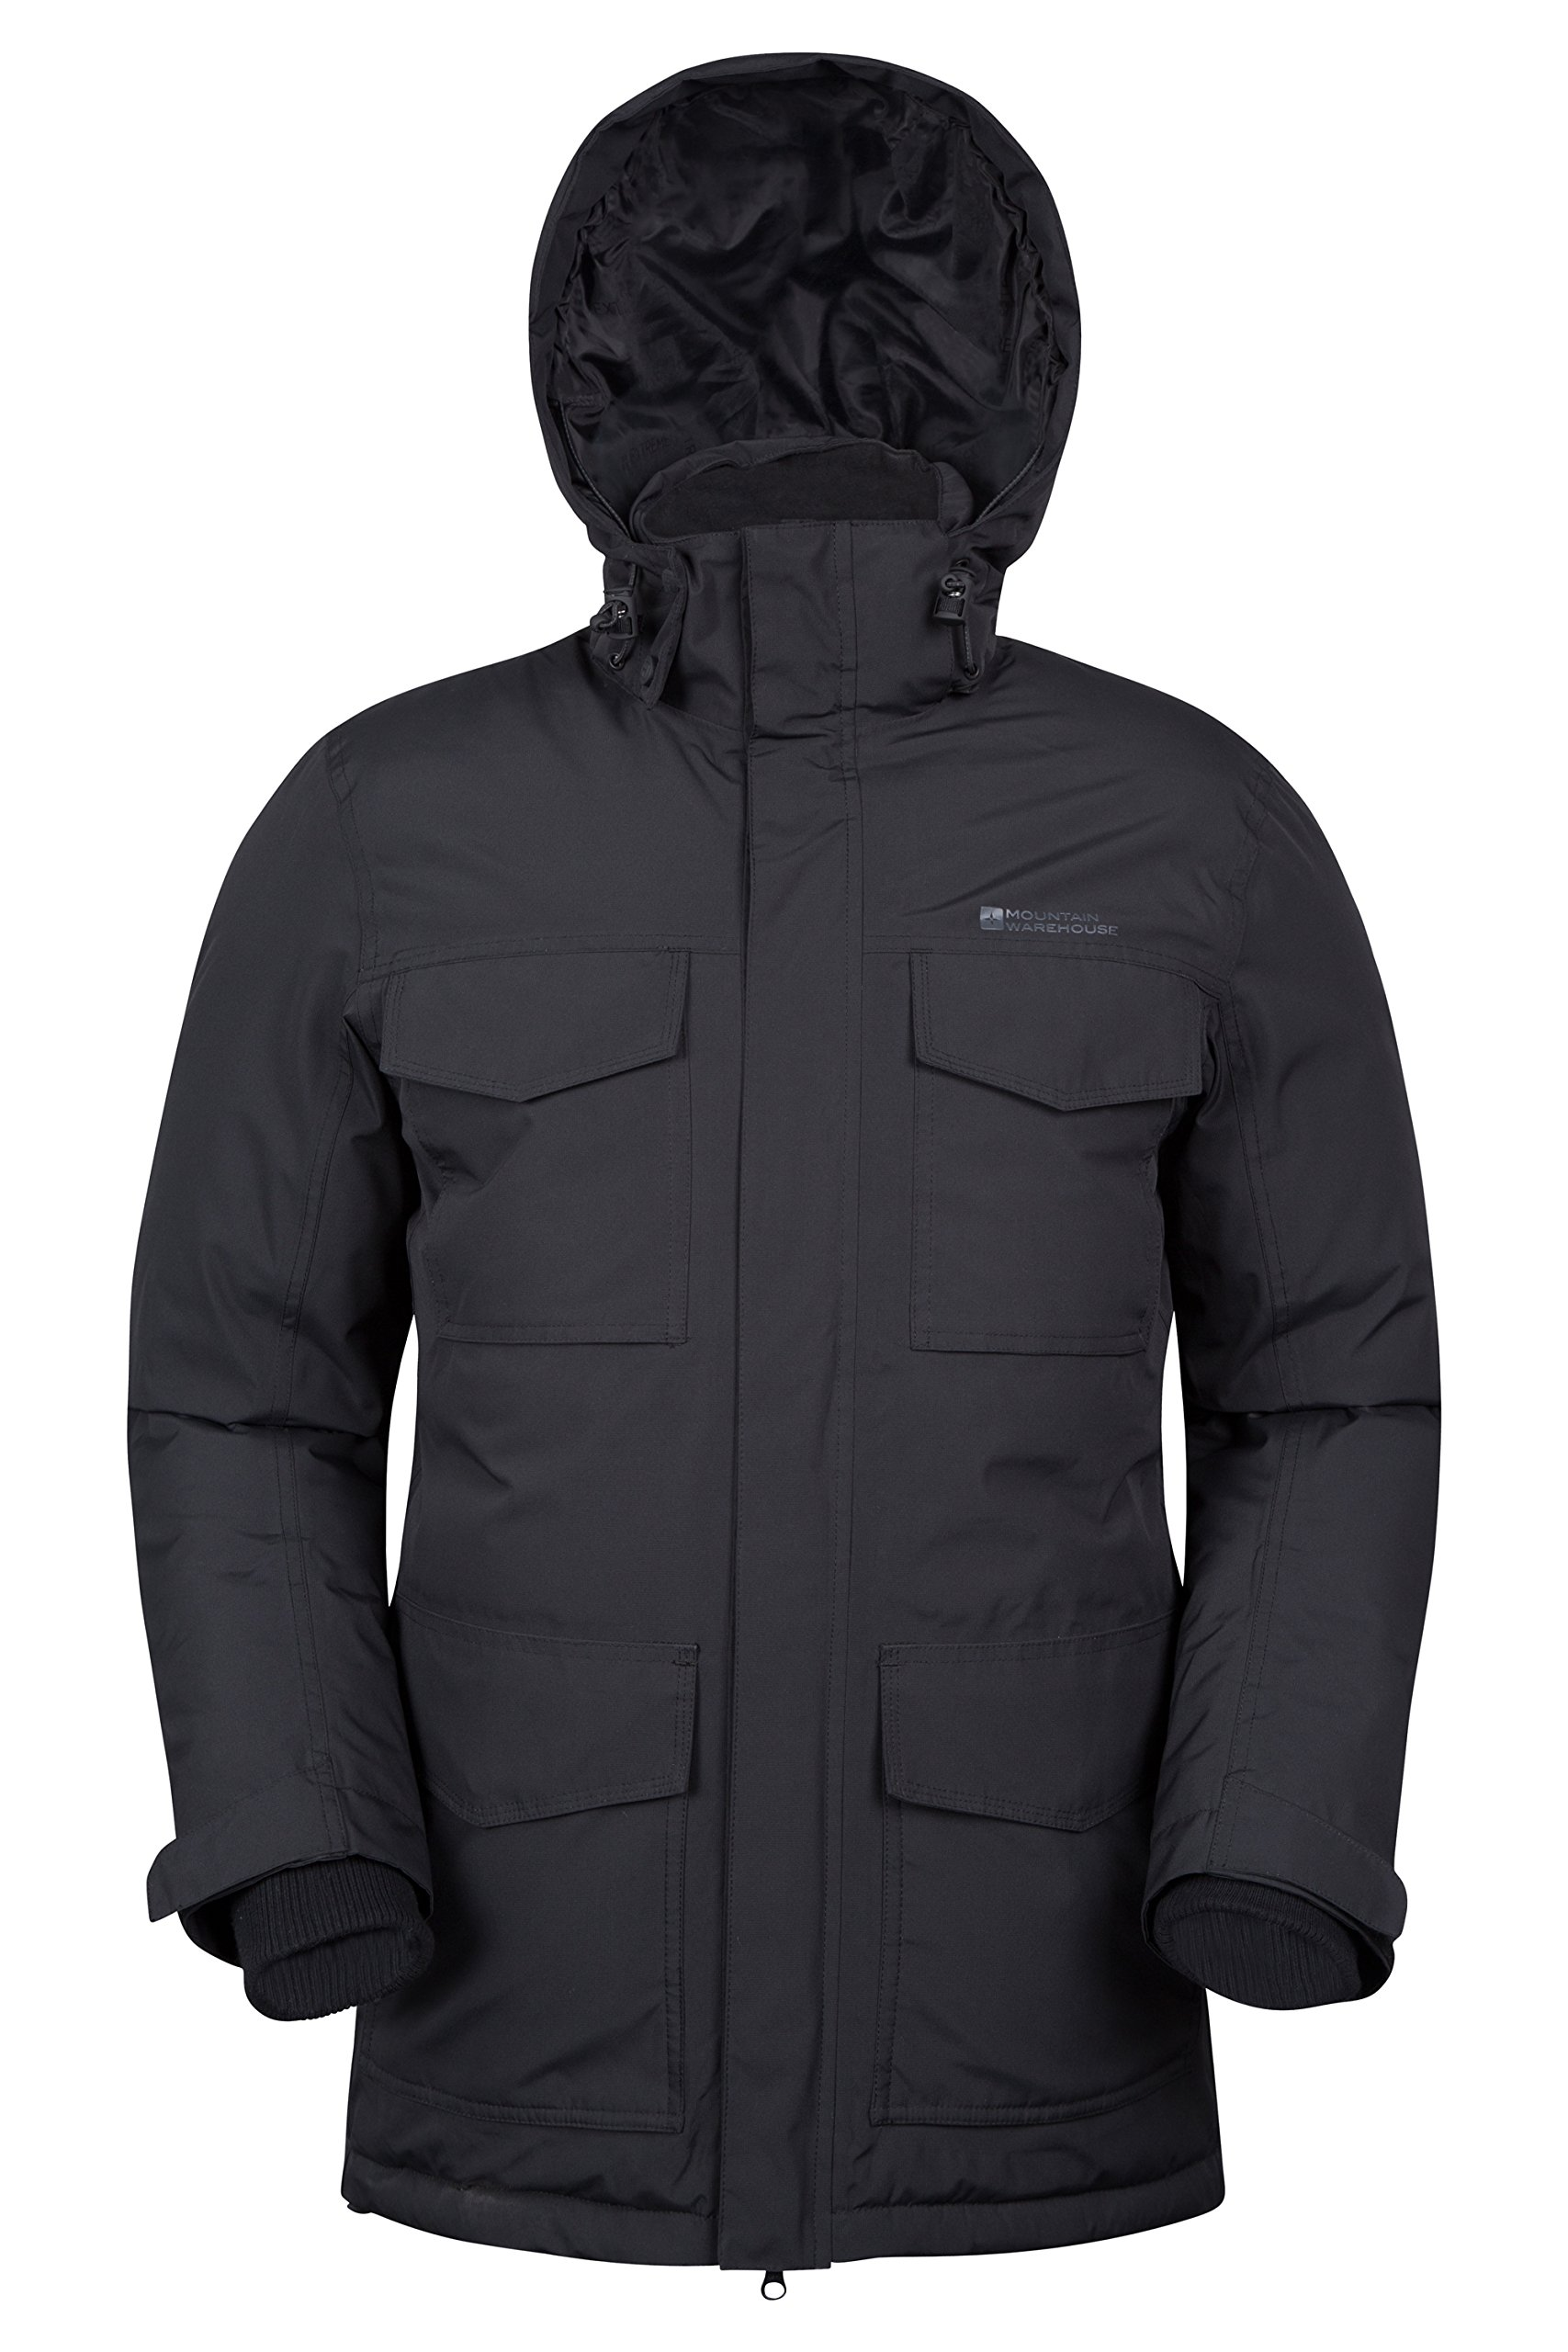 Mountain Warehouse Concord Extreme Mens Down Long Jacket – Taped Seams, Waterproof, Detachable Hoodie, 4 Pockets Perfect…